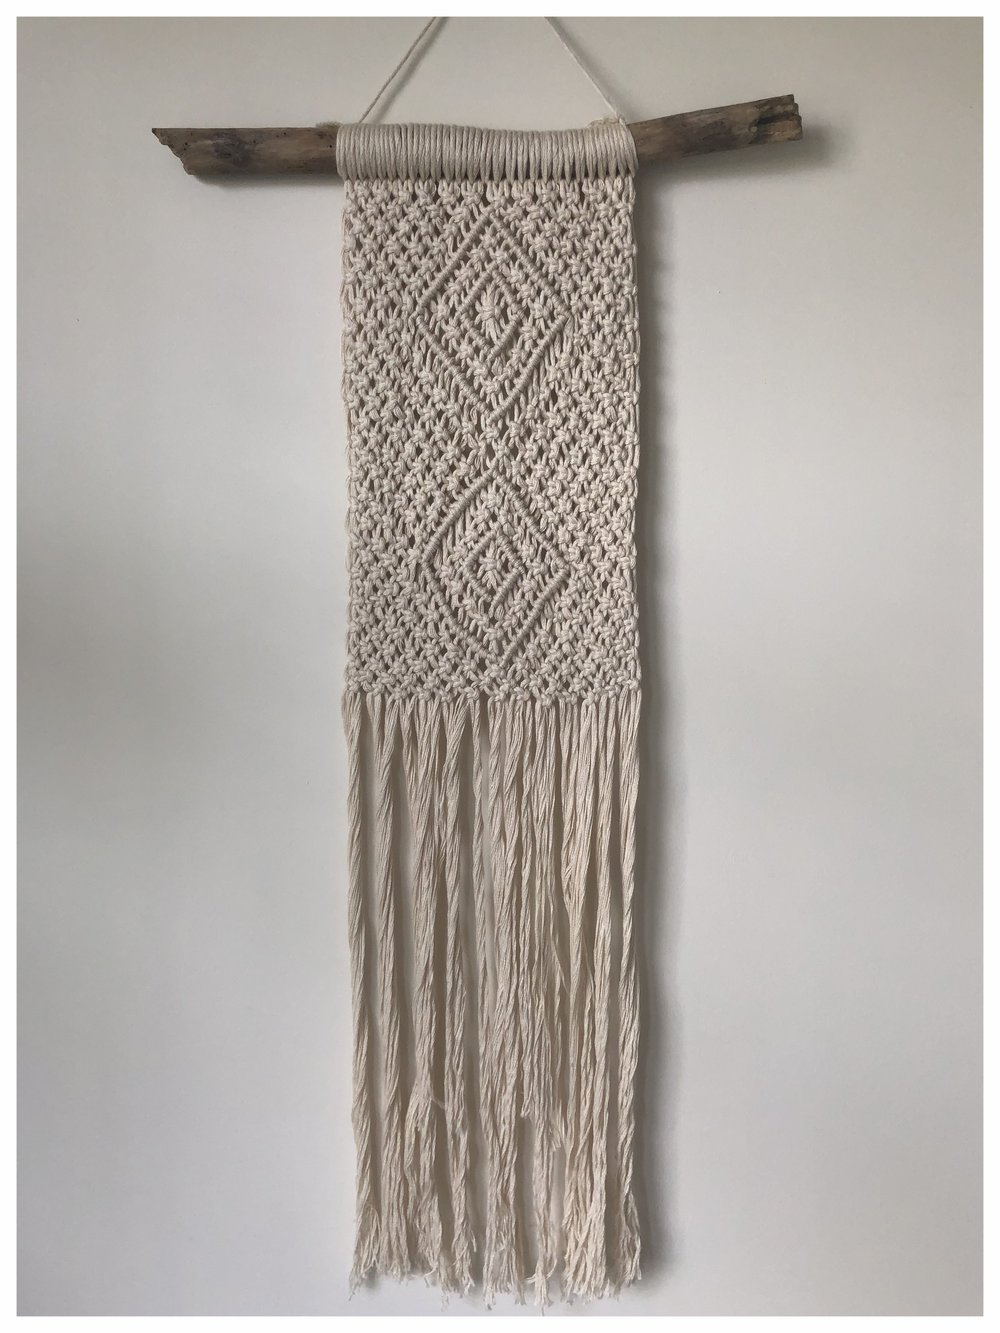 Handmade macrame wall hanging art with drift wood and fringe detail in soft cotton yarn £90